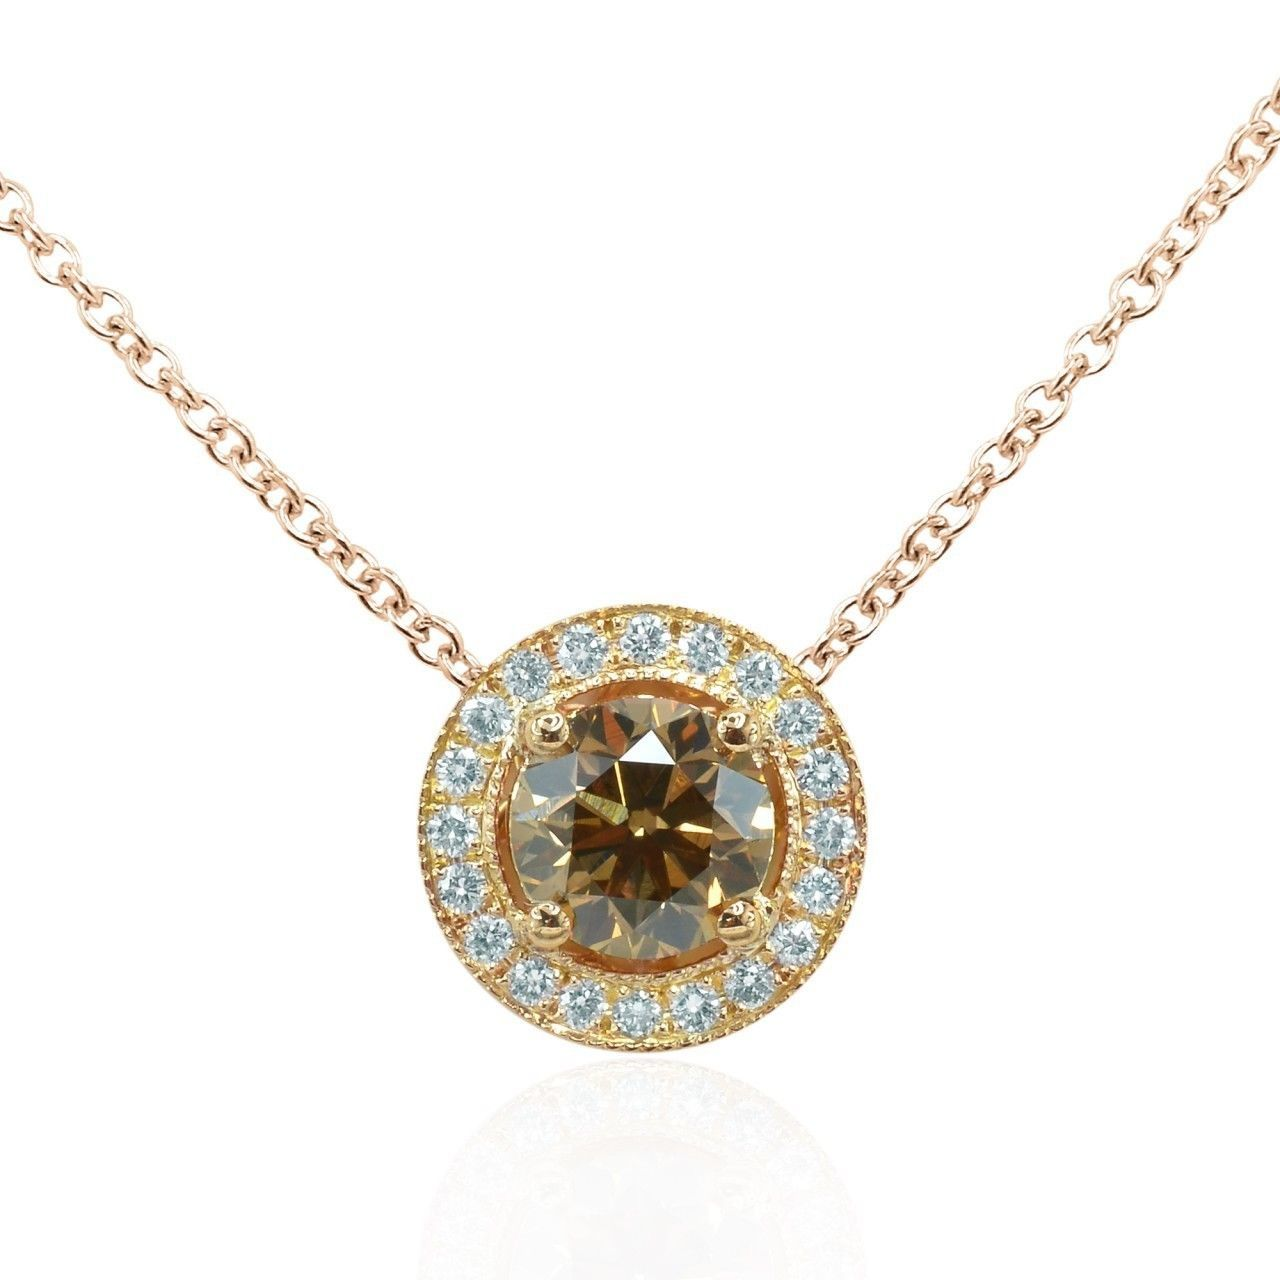 0.83Cts Yellow Diamond Halo Pendant Necklace Set in 18K  Rose Gold GIA Cert